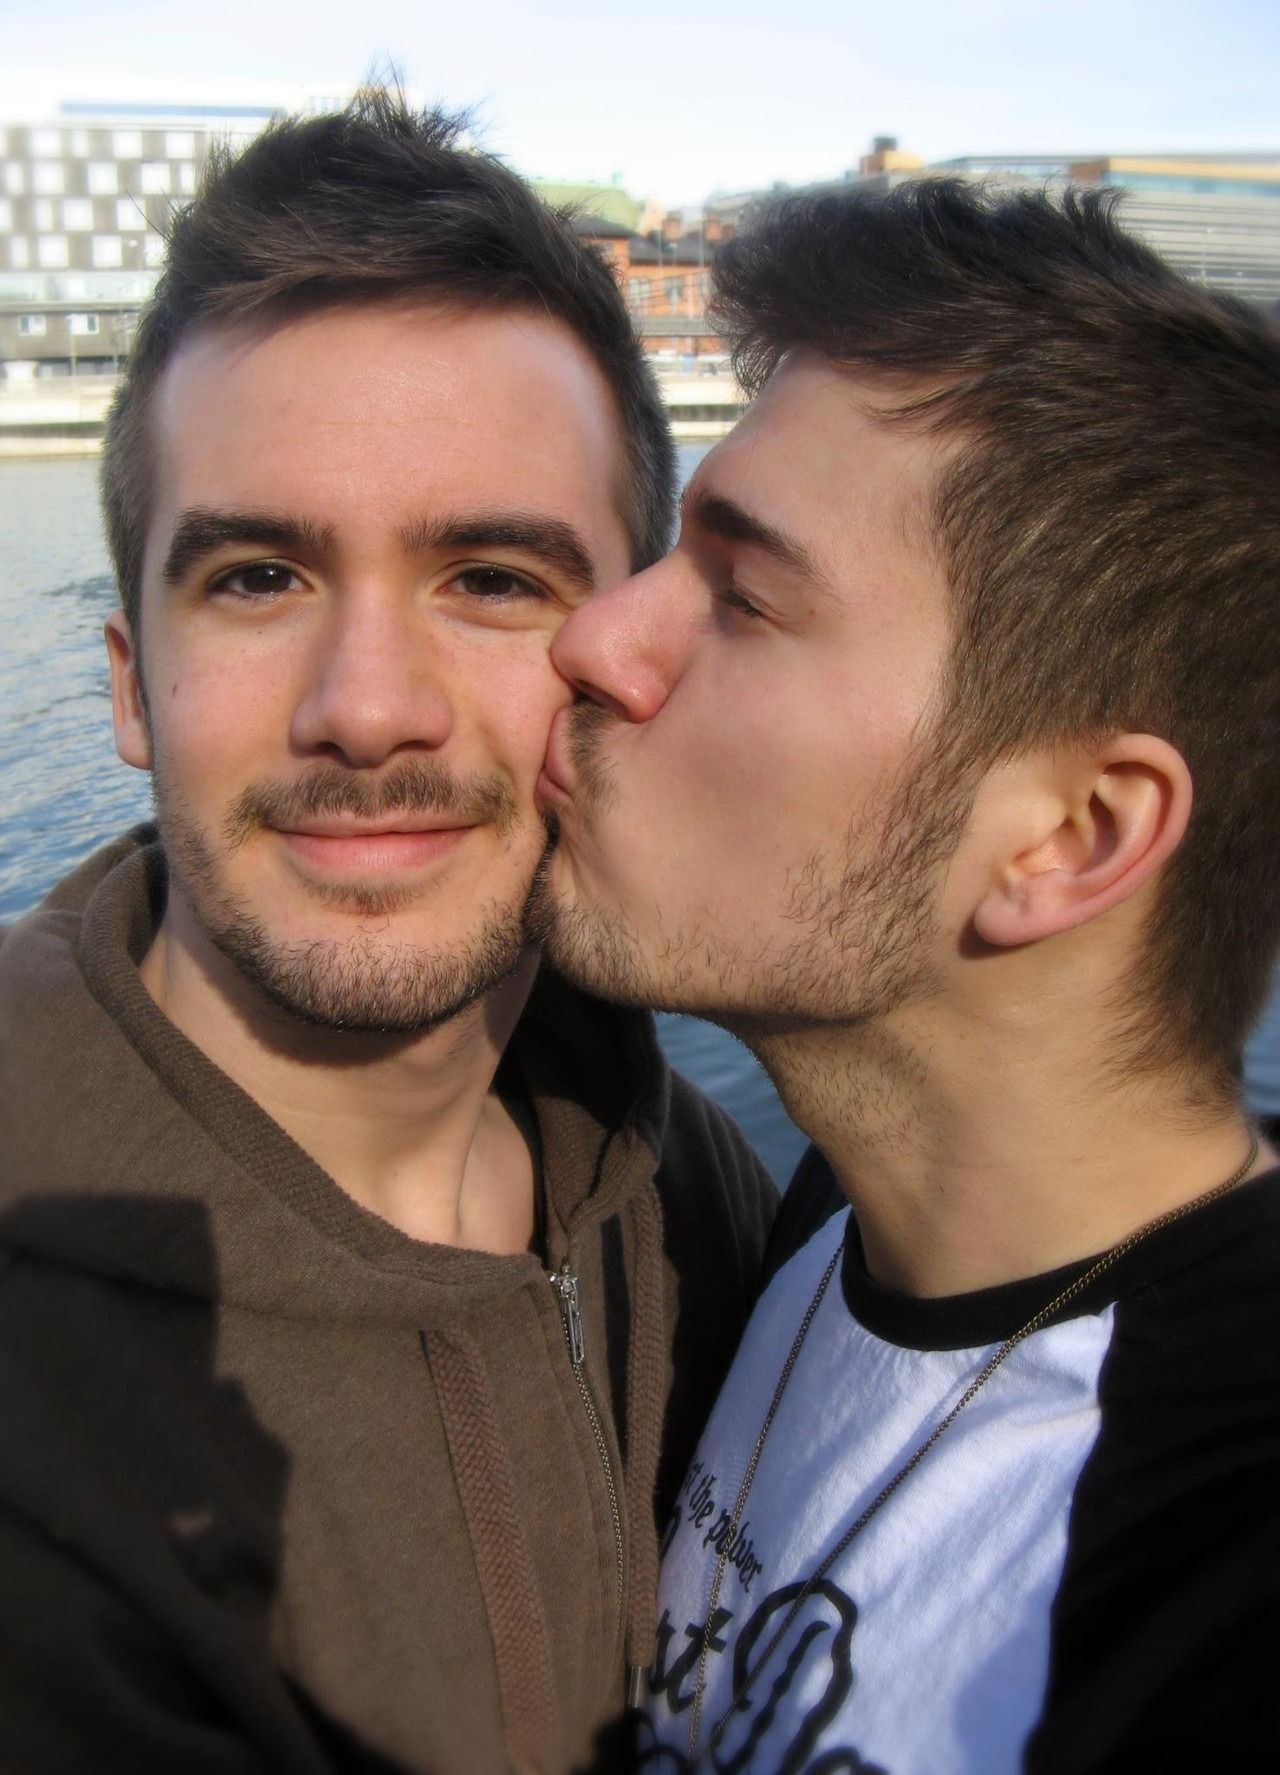 Males kiss and engulf passionately